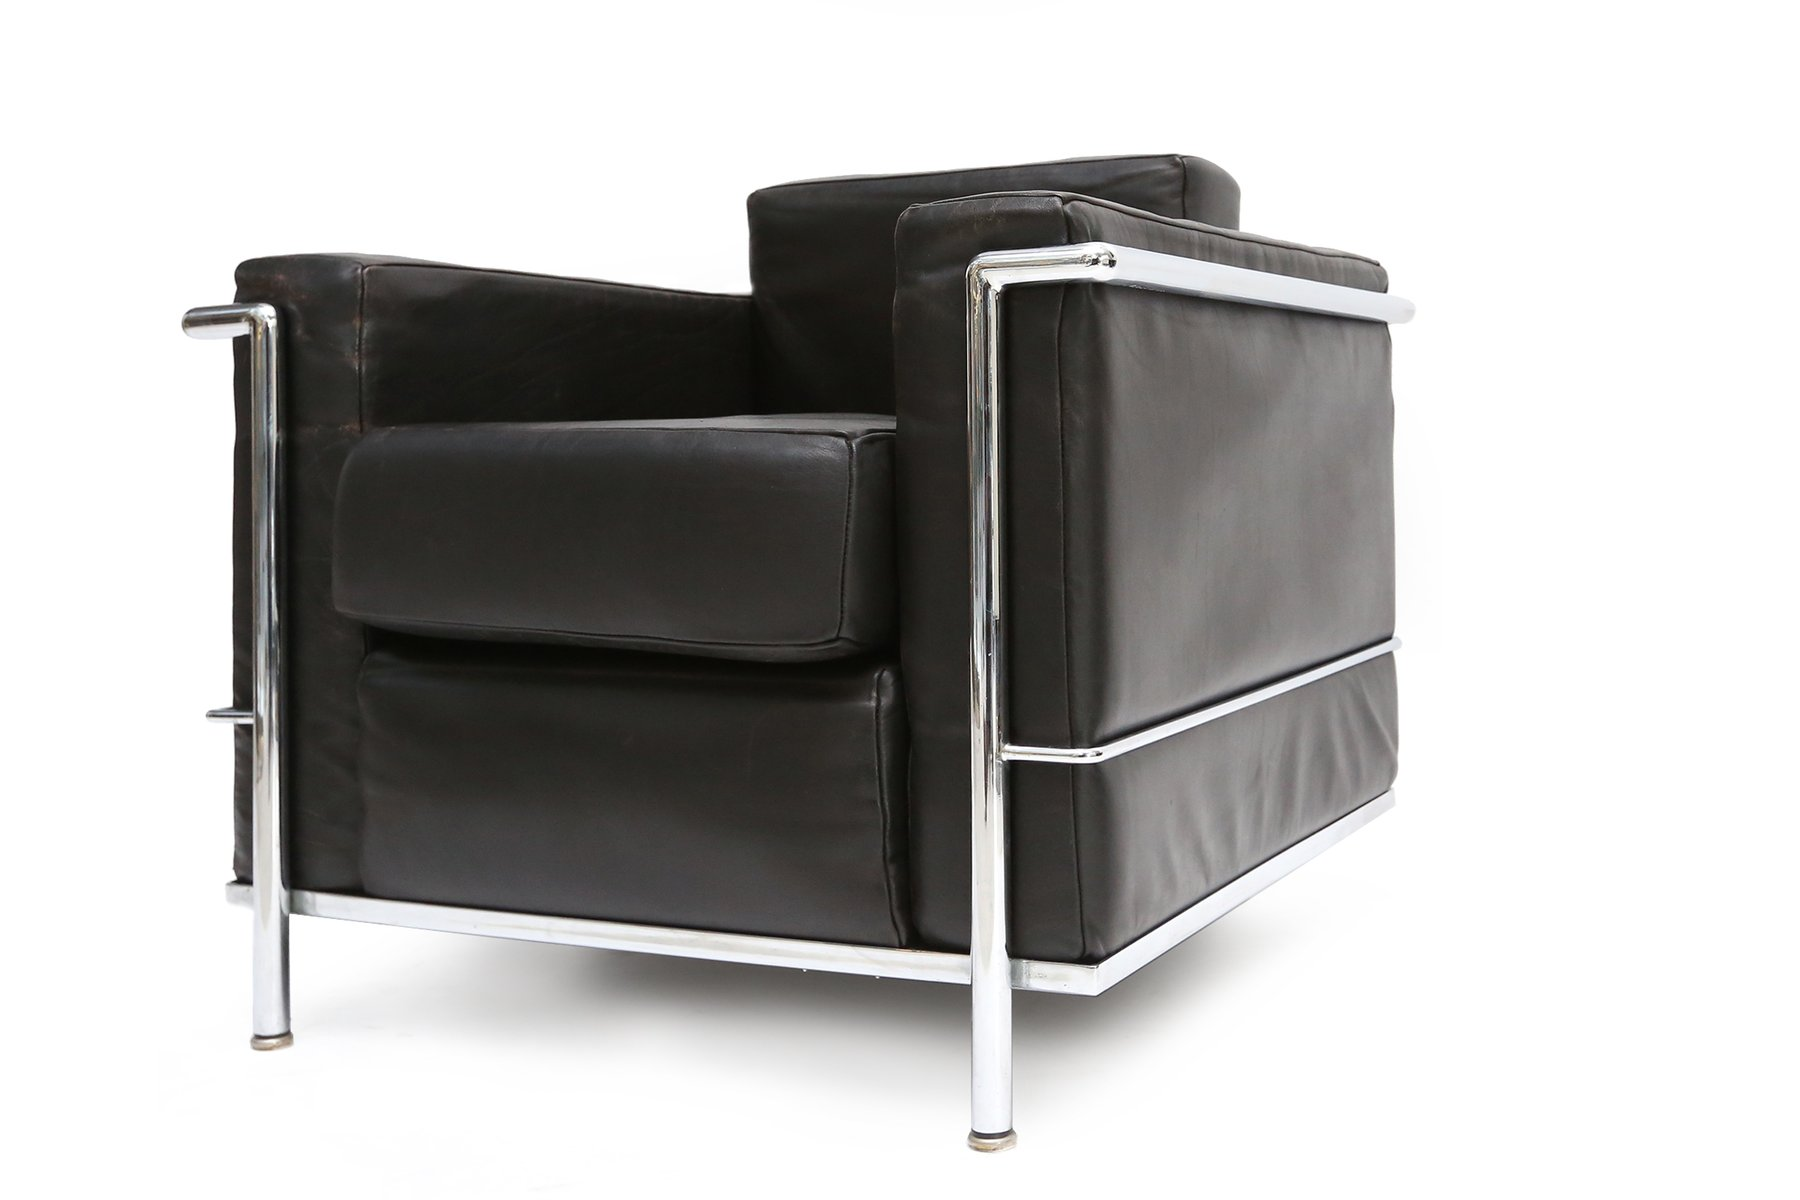 poltrona lc2 vintage di le corbusier jeanneret e perriand per cassina in vendita su pamono. Black Bedroom Furniture Sets. Home Design Ideas